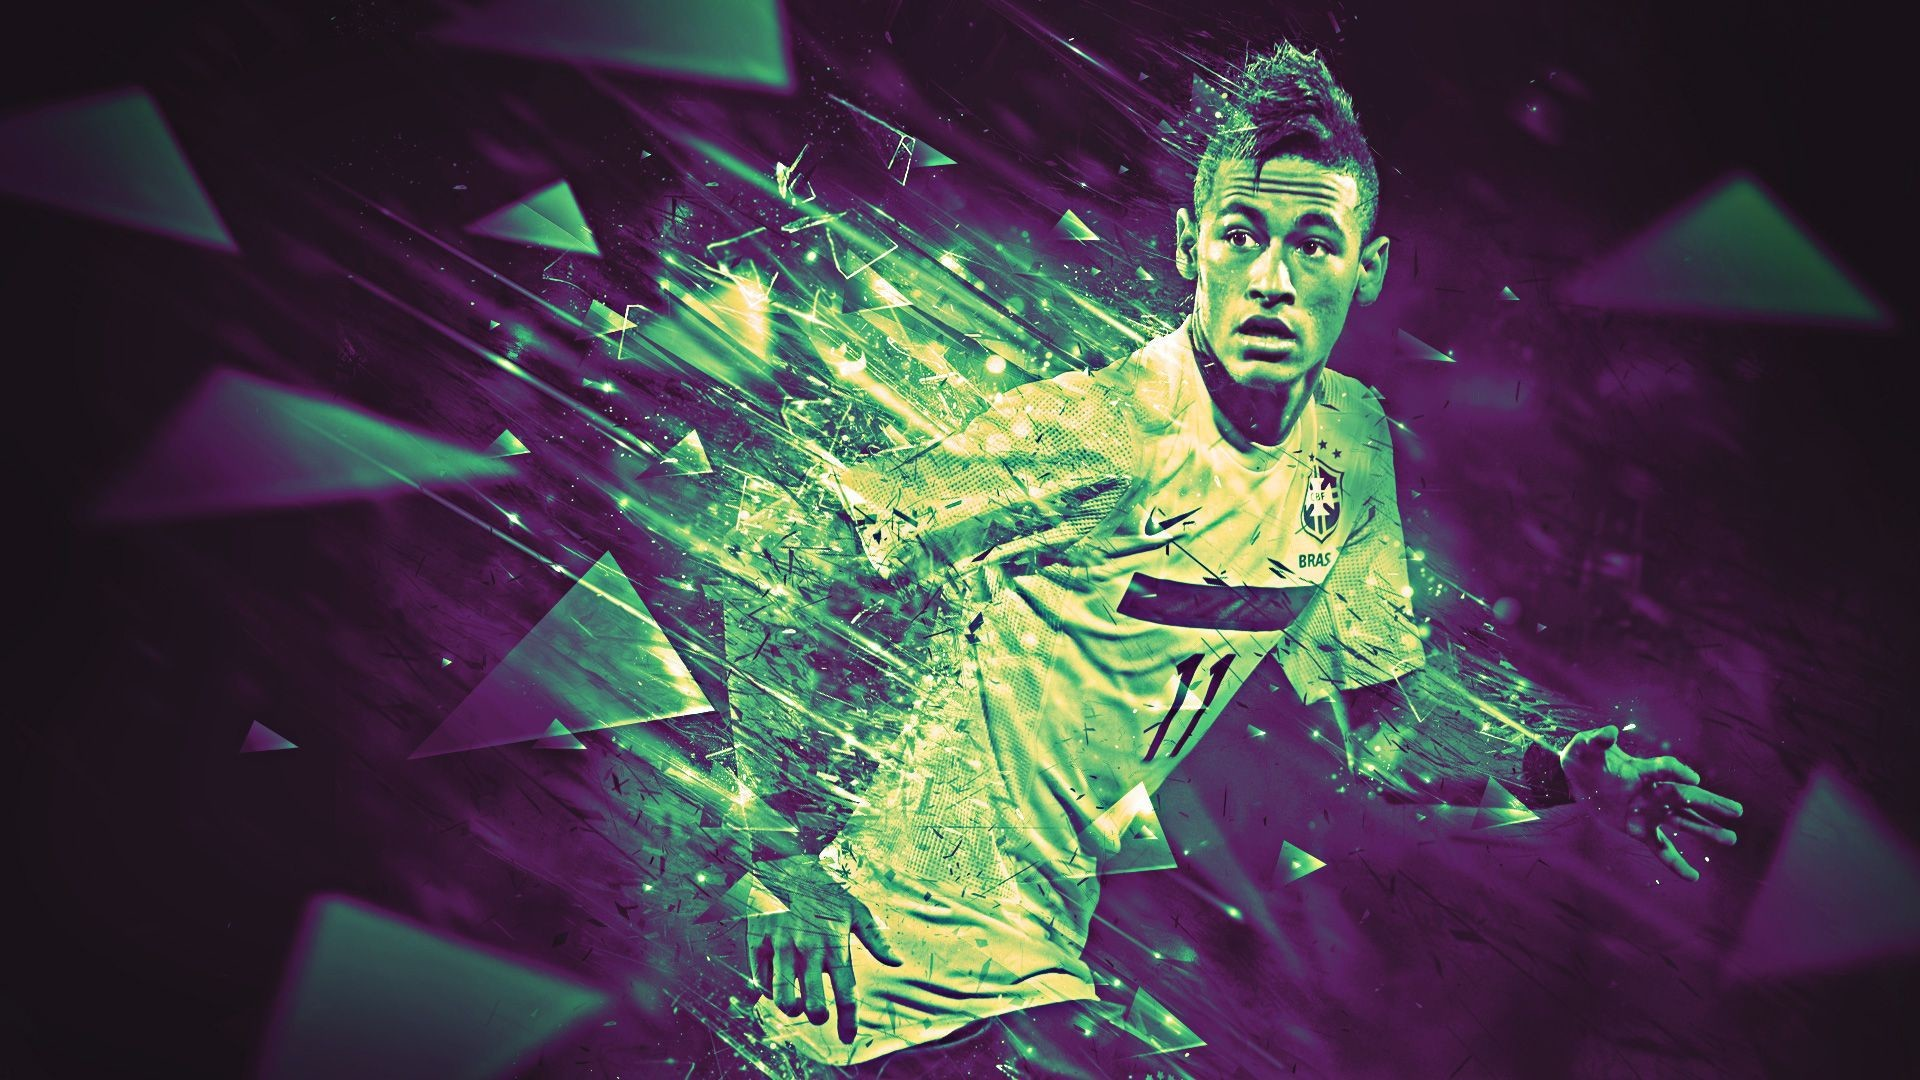 Res: 1920x1080, FIFA Wallpapers Wallpaper 1280×720 Fifa Wallpaper (49 Wallpapers)    Adorable Wallpapers